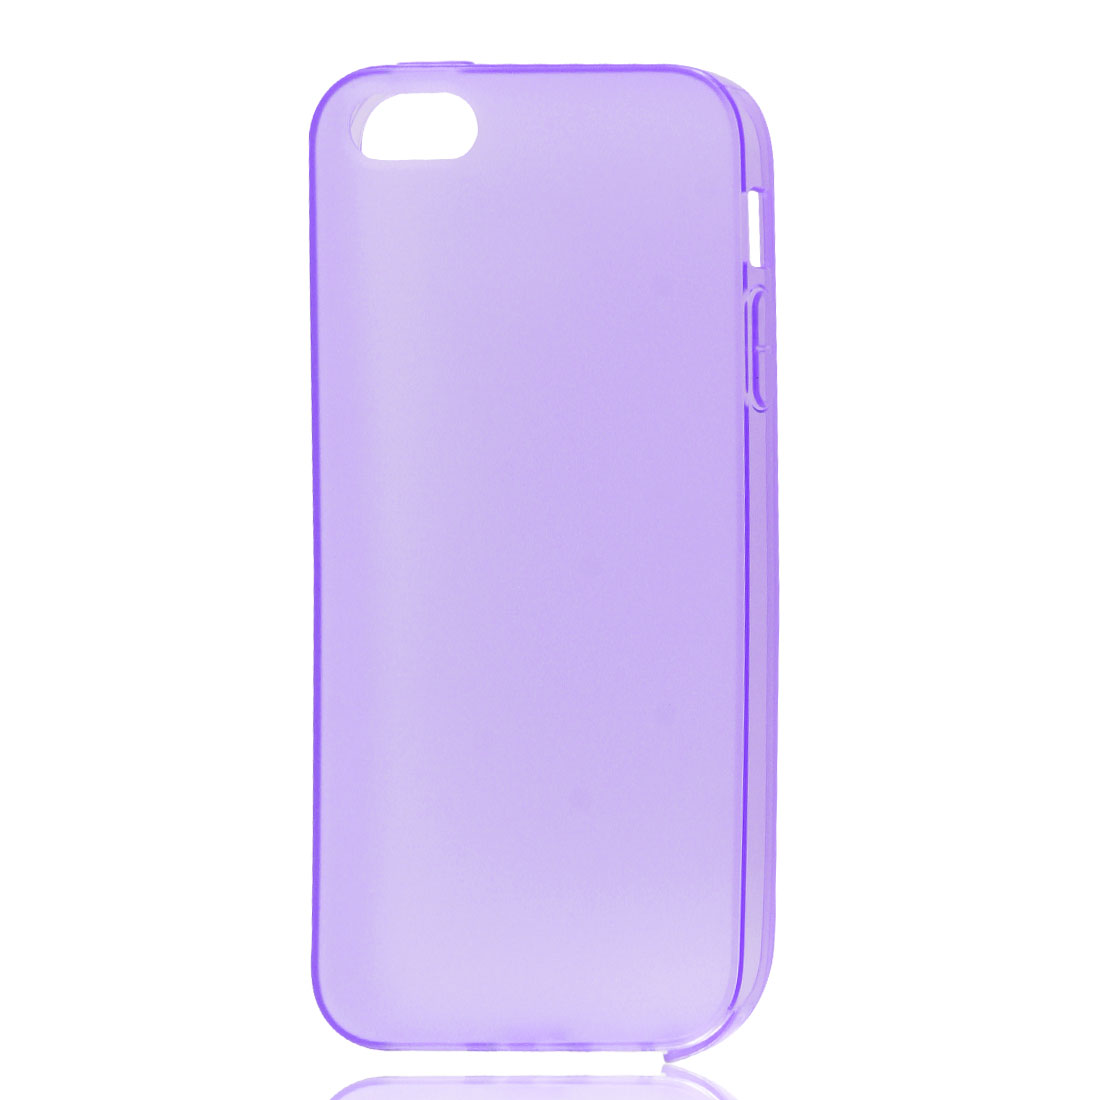 Purple Soft Plastic Matte Protective Case Cover Skin for Apple iPhone 5 5G